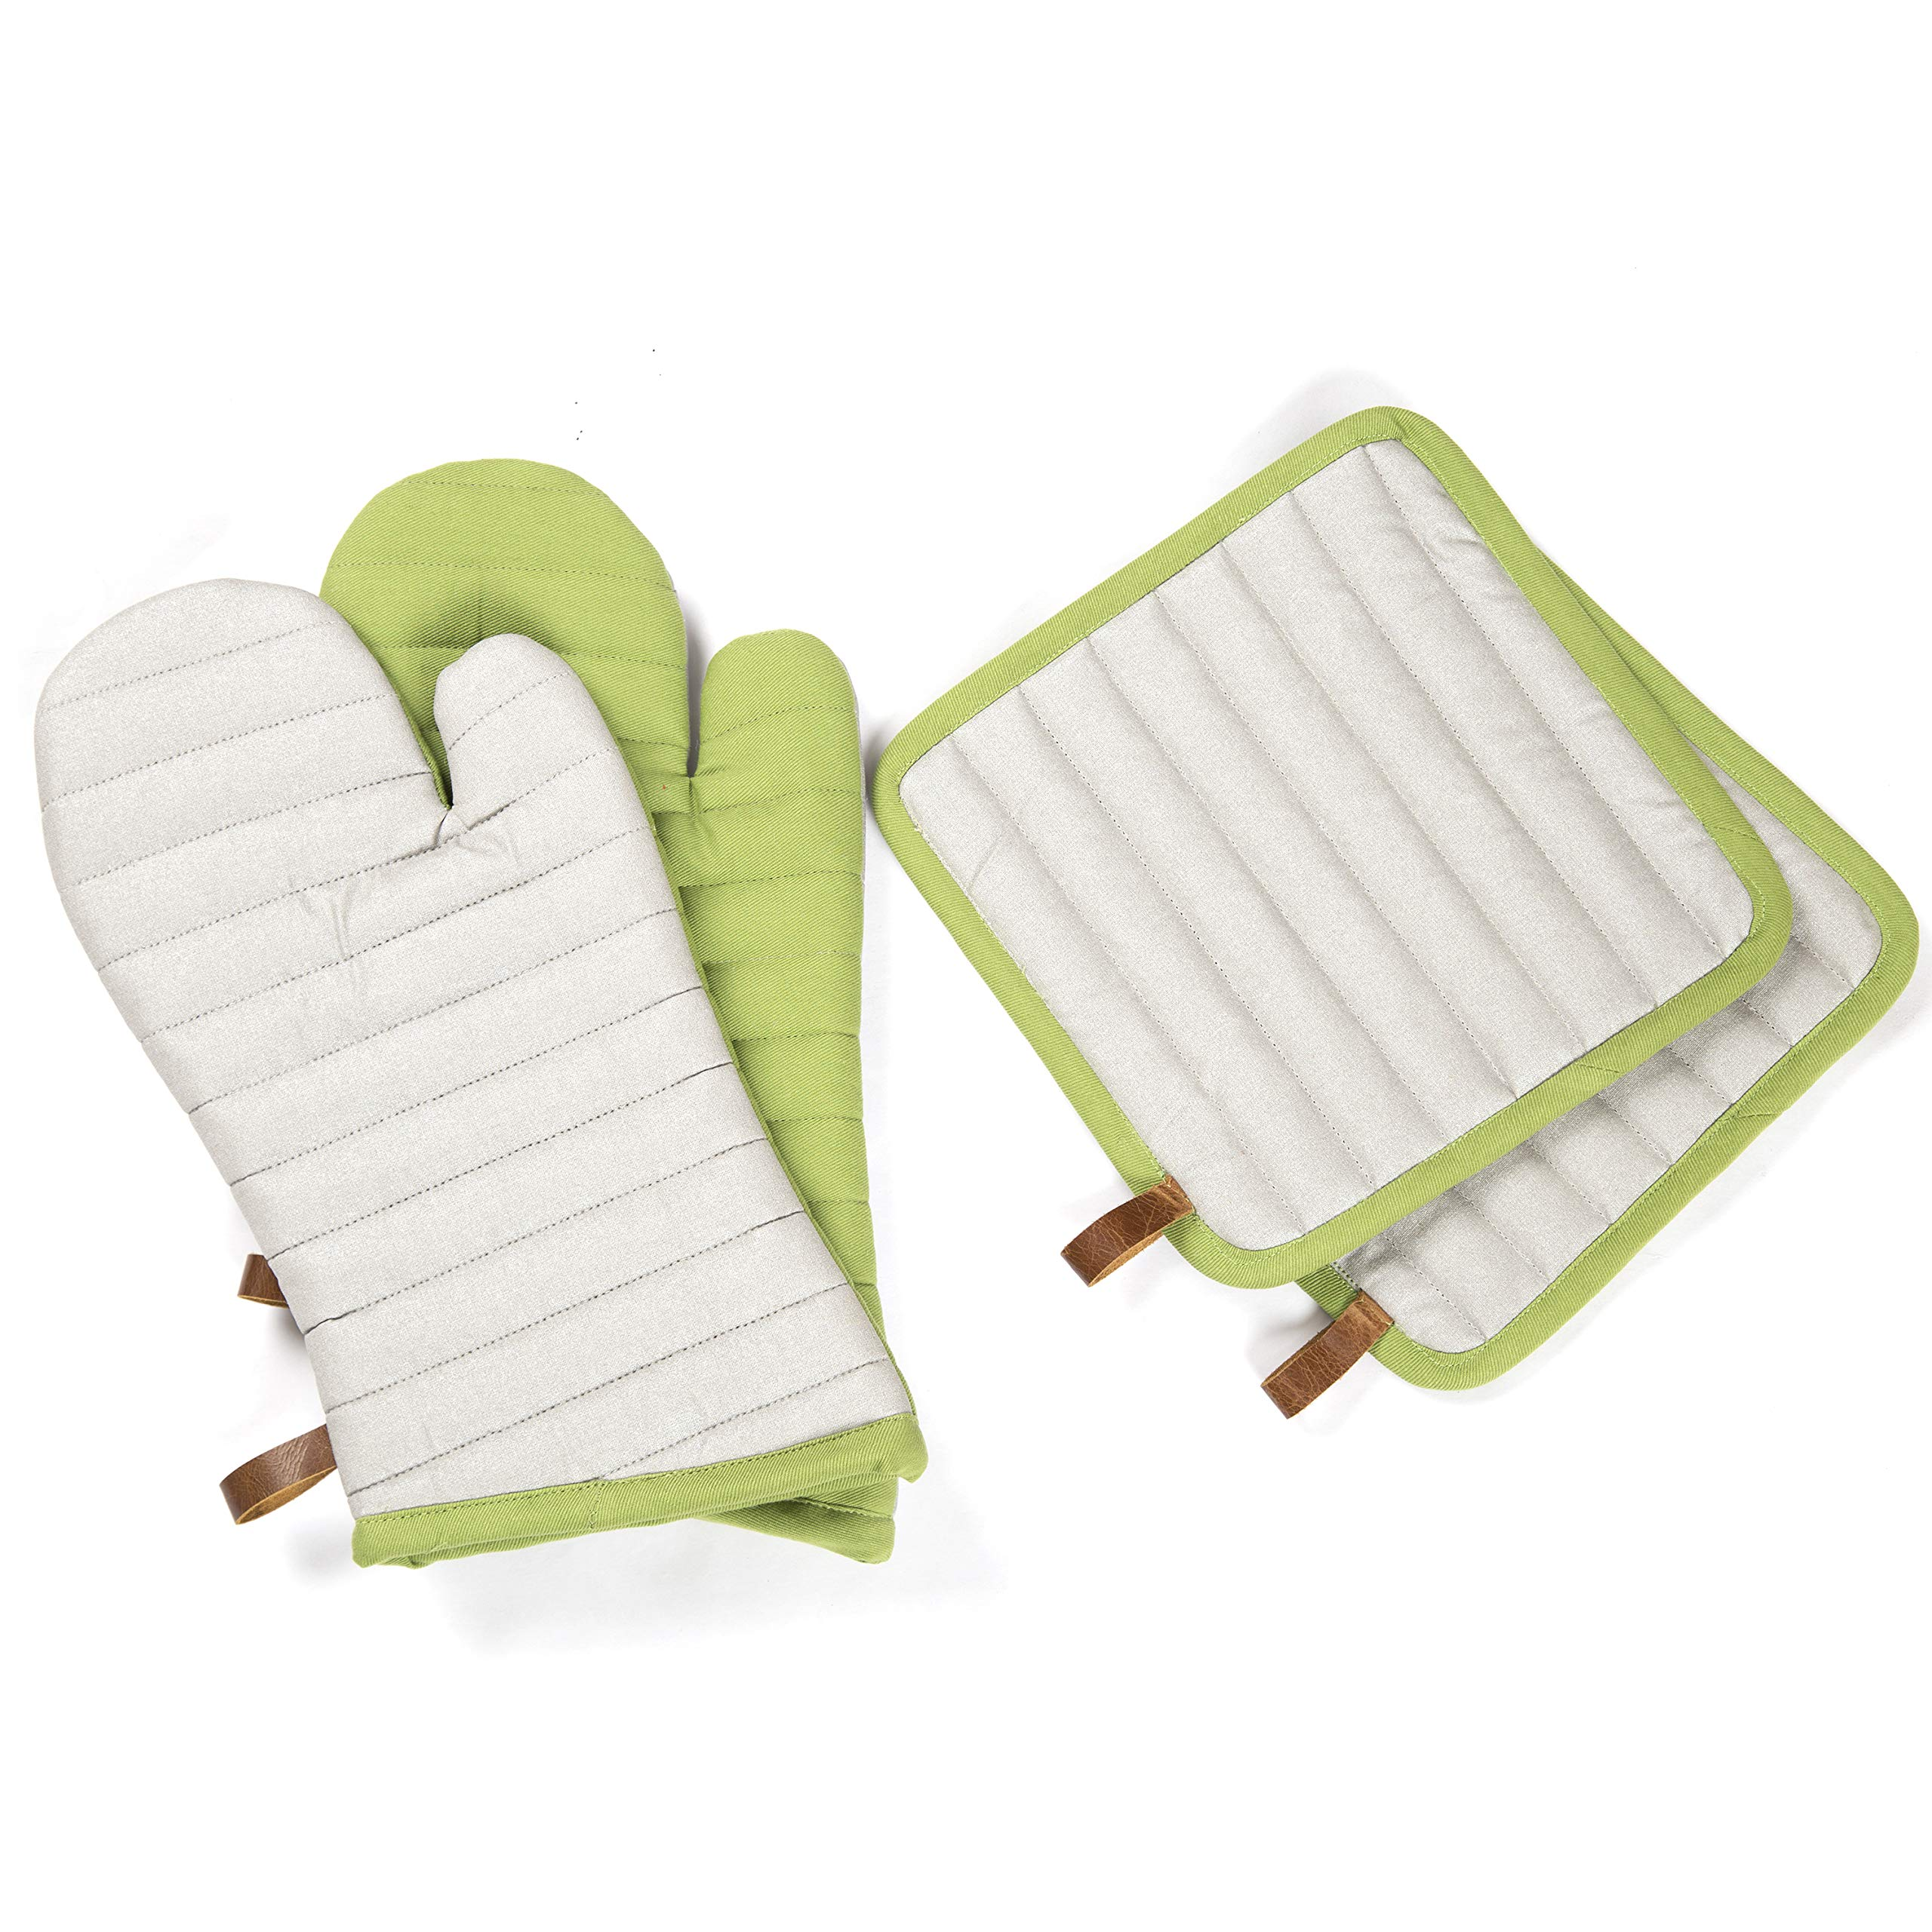 Maspar Pot holders and Oven Mitts/Gloves 4 piece set with genuine leather trims 2 Mitts and 2 Pot Holders, Green and Silver Heat Resistant Machine Washable Best for Cooking, Baking, Grilling, Barbecue